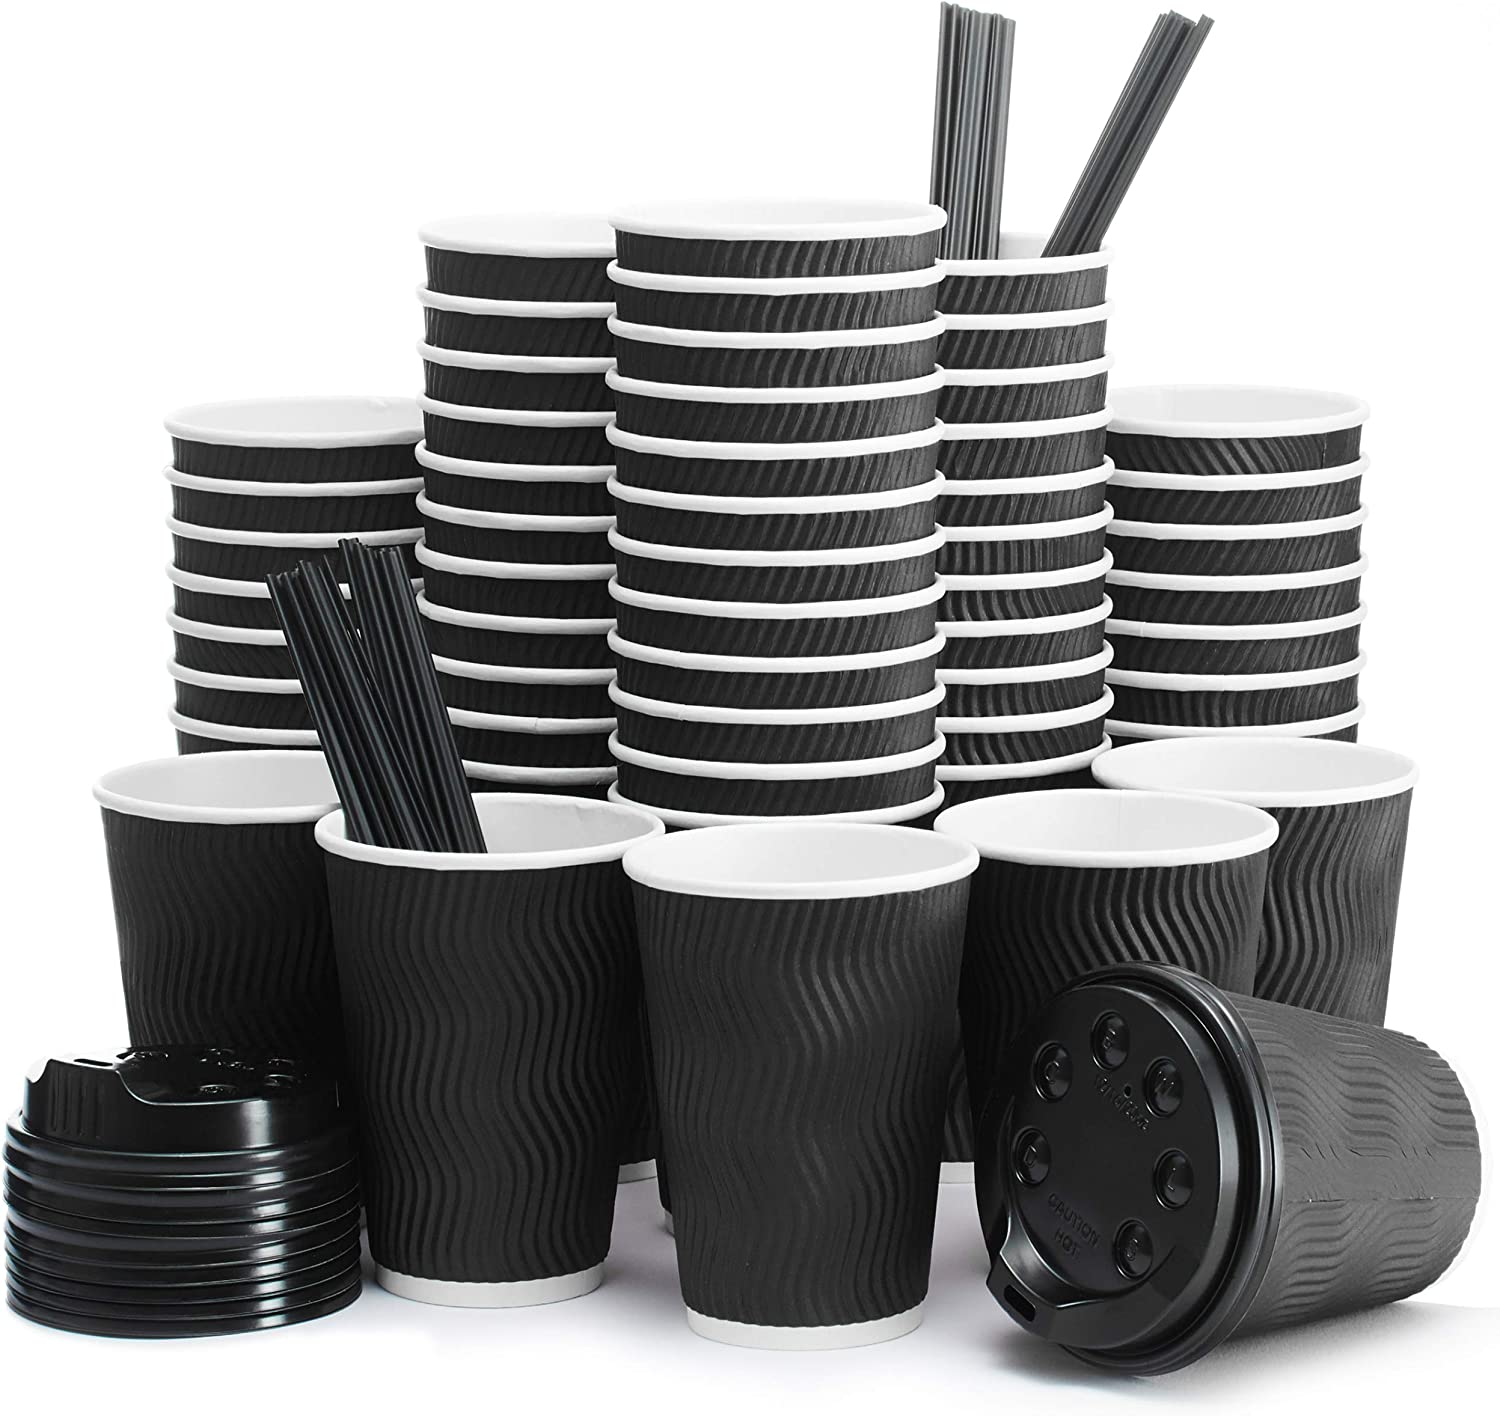 Insulated Disposable Coffee Cups with Lids & Straws 12 oz, 100 Packs - Paper Cups for Hot Beverage Drinks To Go Tea Coffee Home Office Car Coffee Shop Party (Black)